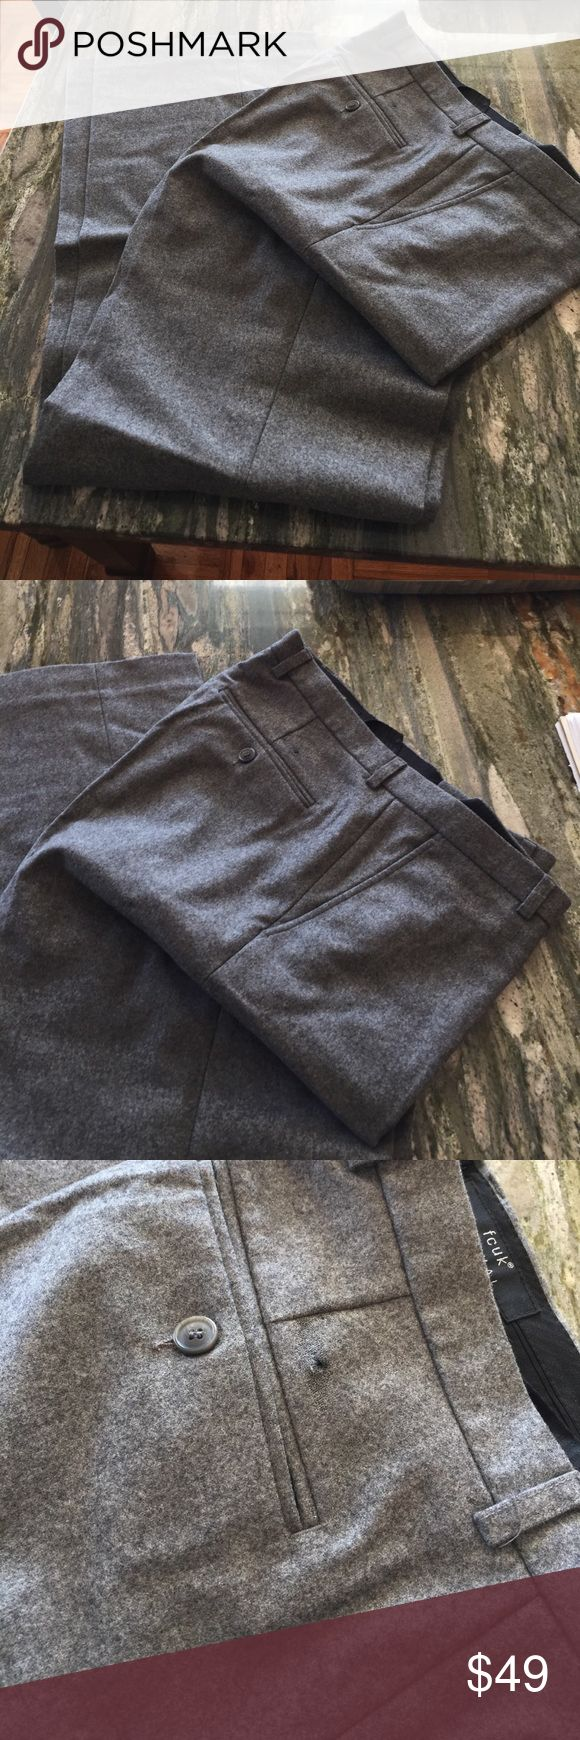 Men's pants Size 34 Wool Made inPoland Mans pants , size 34 Made in Poland 90%virgin wool& 10%cashimire Worn a few times but has a small defect (see photo closer) FOUK Formal Pants Dress